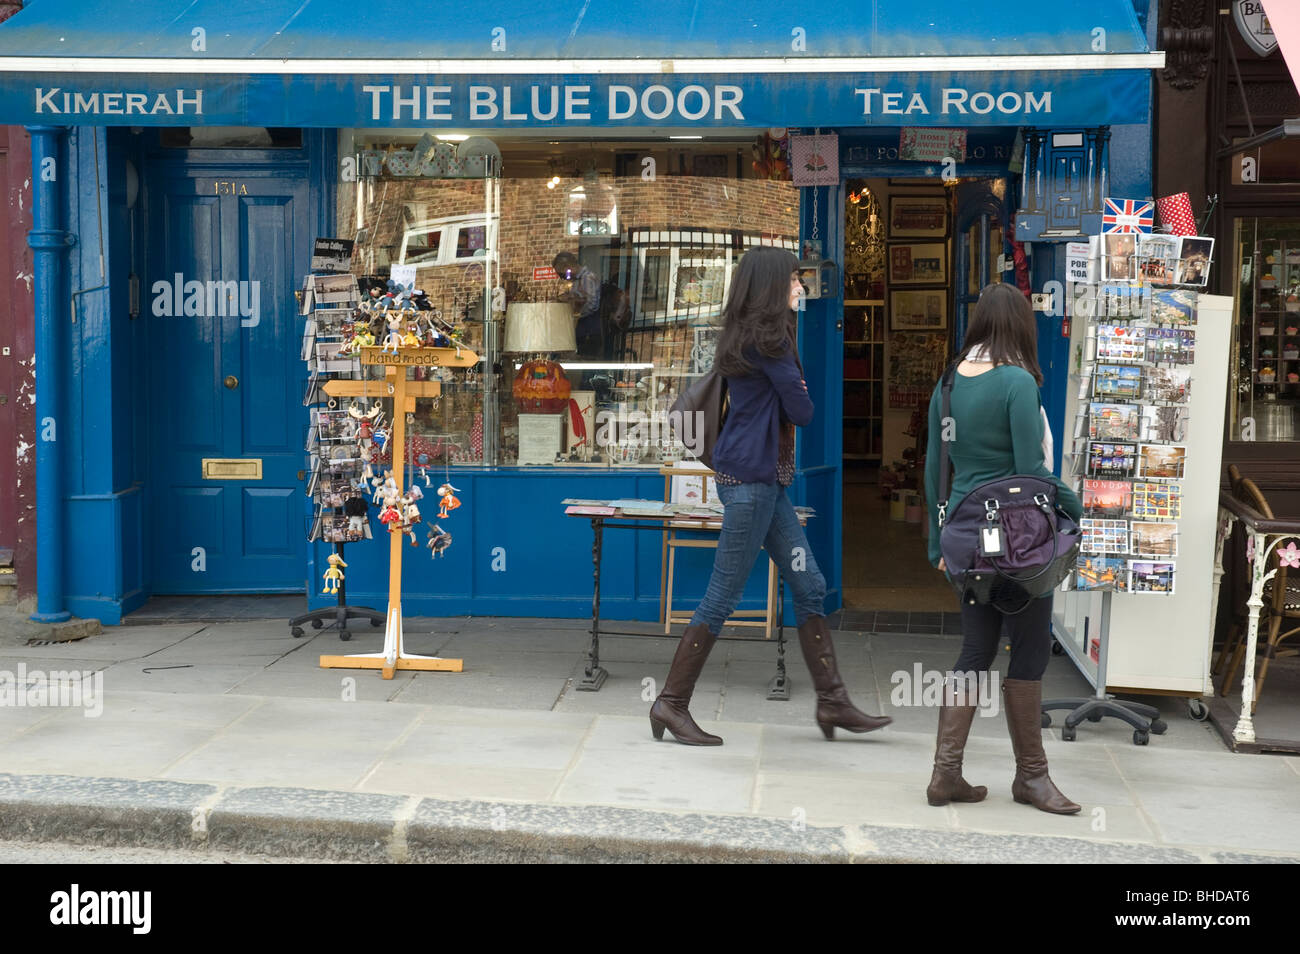 Beau The Blue Door   A Shop And Tea Room With Passing Shoppers N Notting Hill  Gate London UK